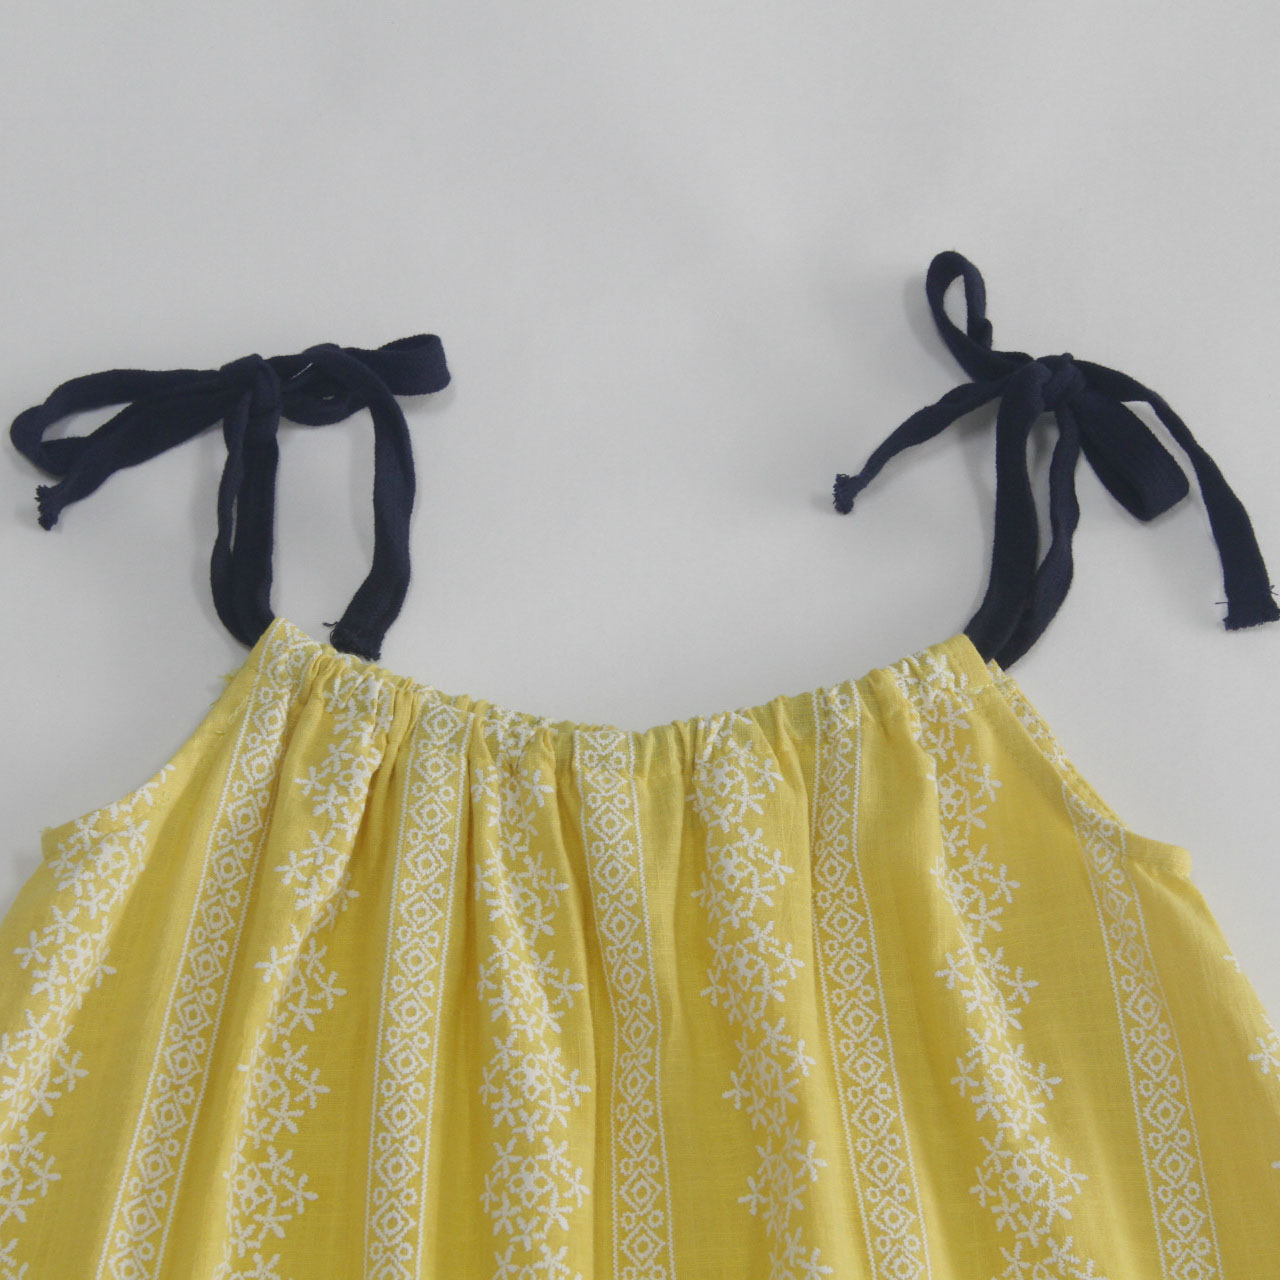 girls beach dress 2019 new summer dresses for teenagers clothes yellow bohemian girl dress for 3 12 age teenagers girls dress in Dresses from Mother Kids